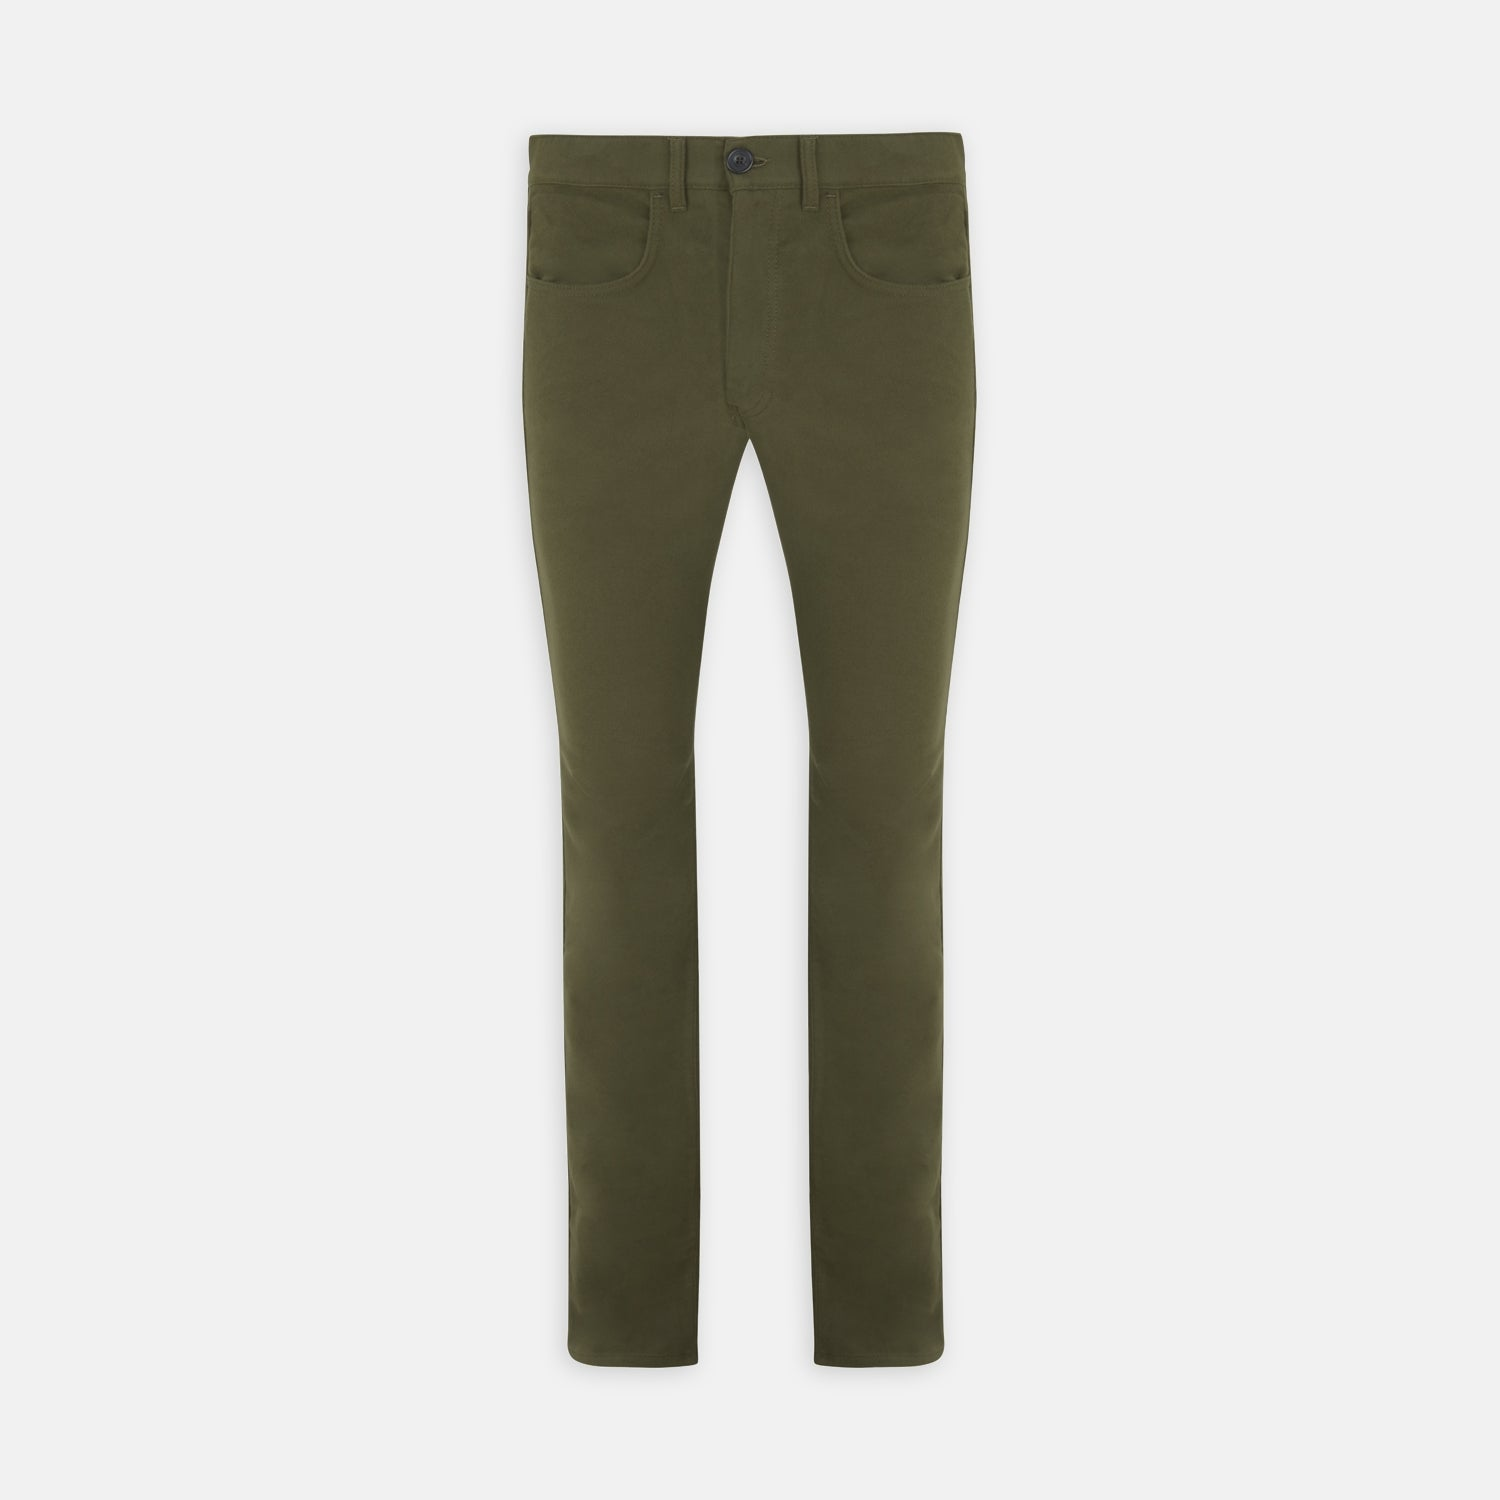 Hanley Dark Olive Moleskin 5-Pocket Trousers